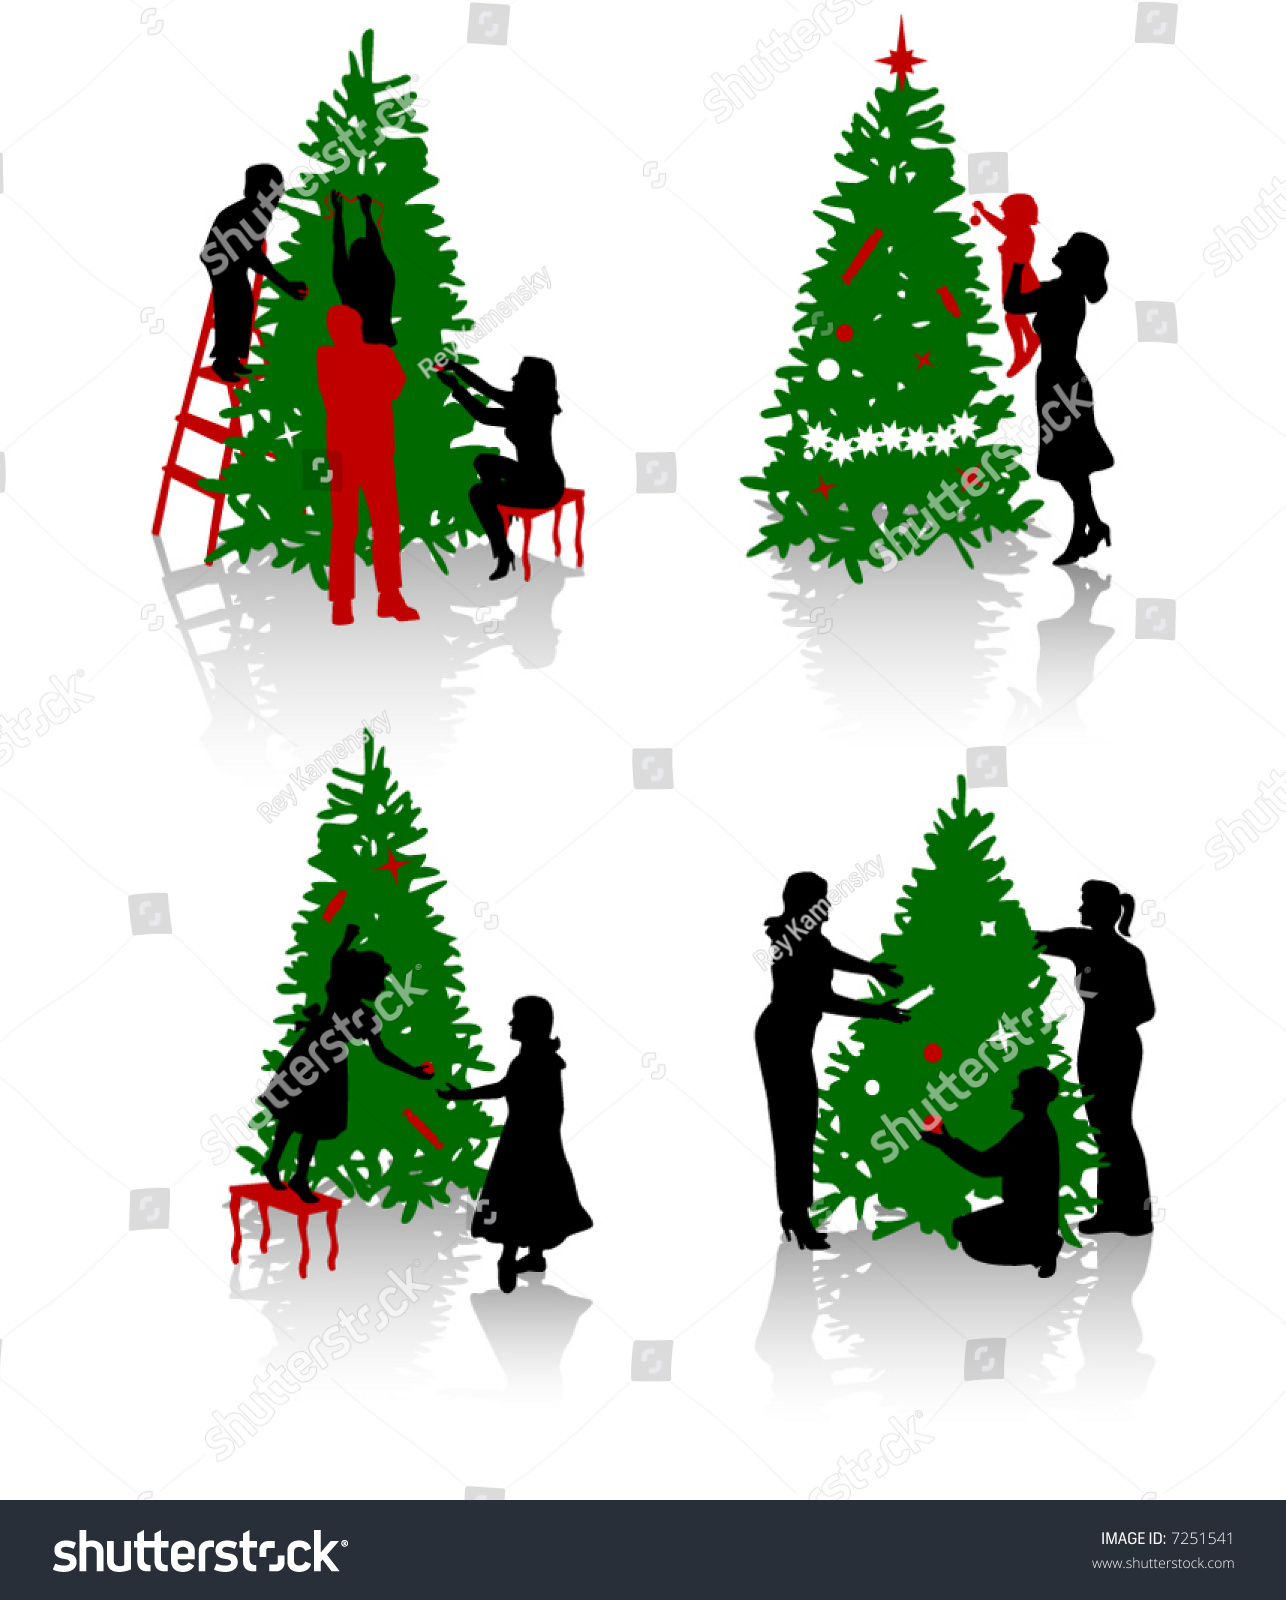 silhouettes of the people decorating a christmas tree - People Decorating A Christmas Tree